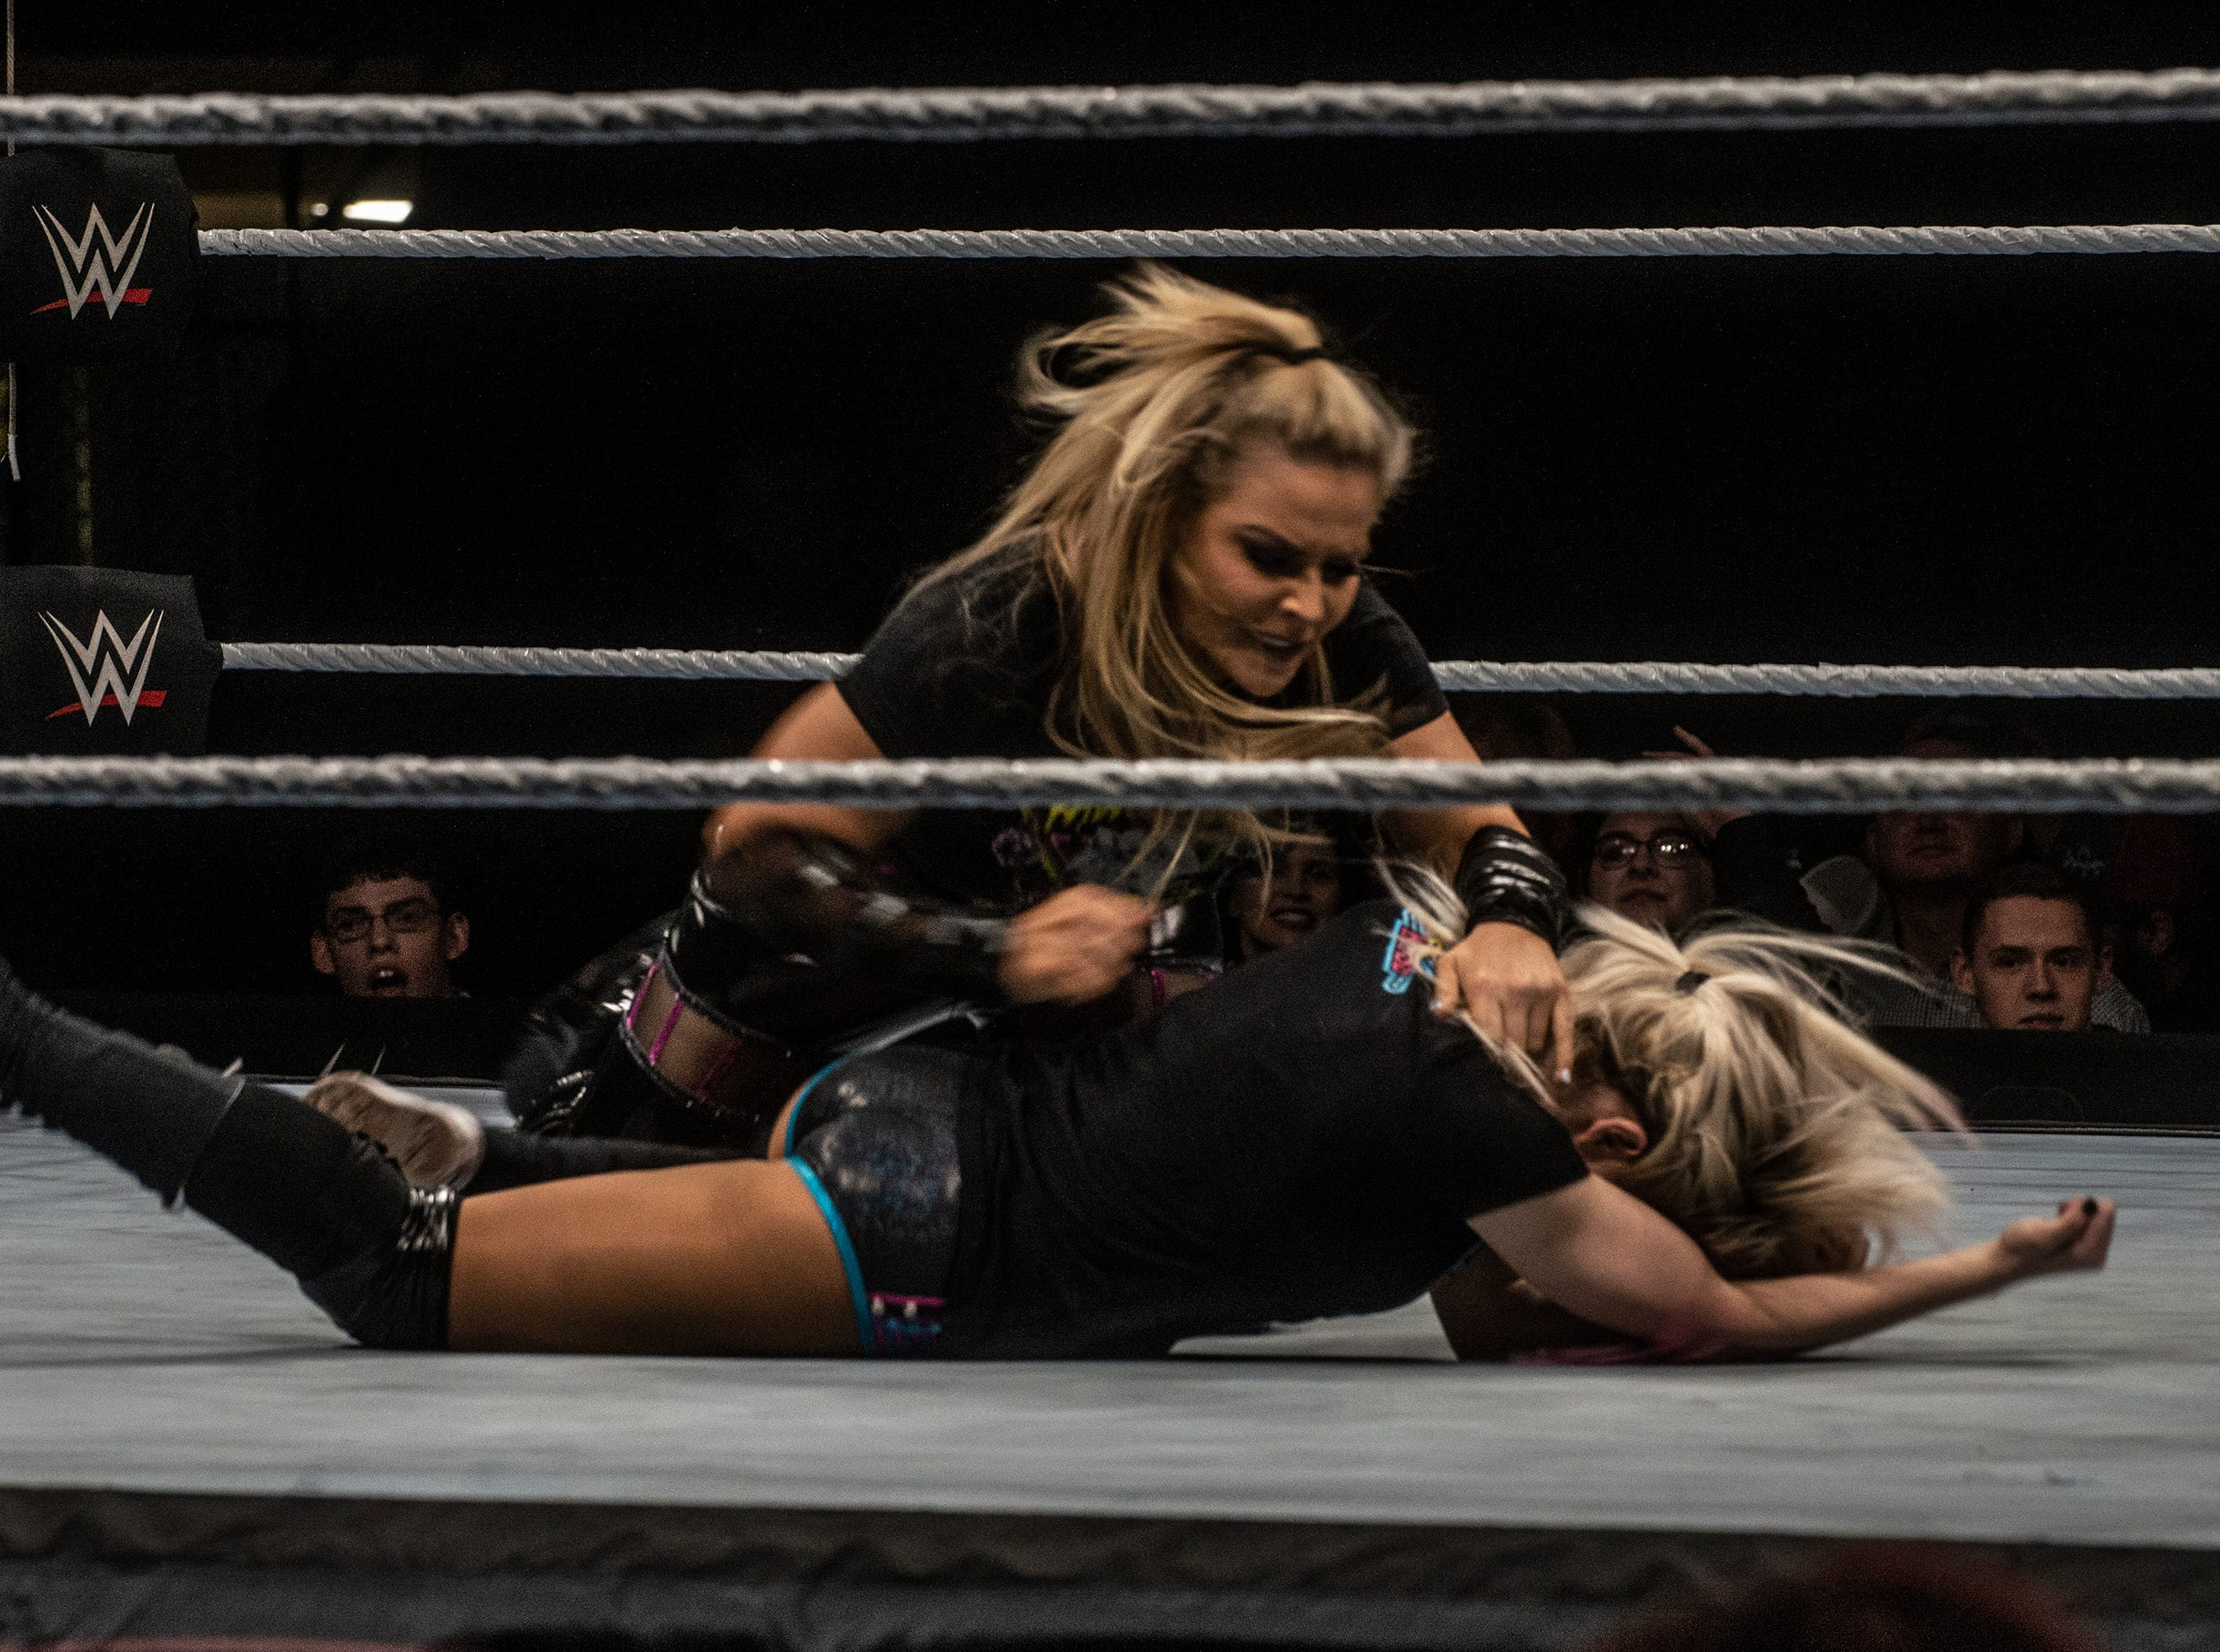 Natalya takes Alexa Bliss to the mat. WWE Live Road to Wrestlemania came to Garrett Coliseum in Montgomery on Sunday, Feb. 24, 2019.